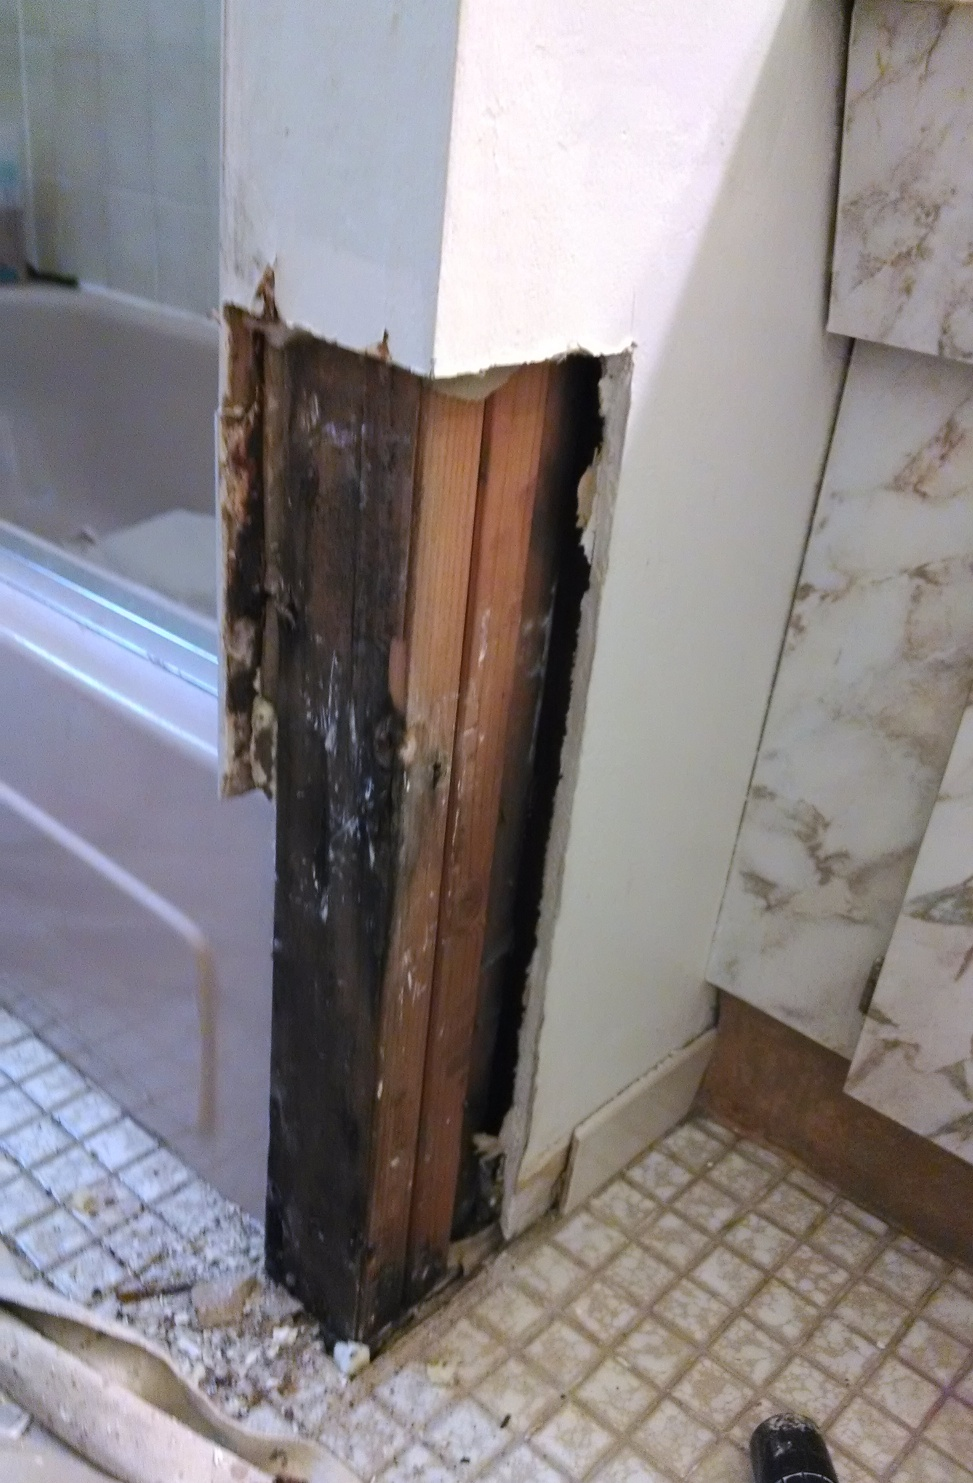 Pictures Of Mold In The Home - Removing mold from bathroom walls and ceiling